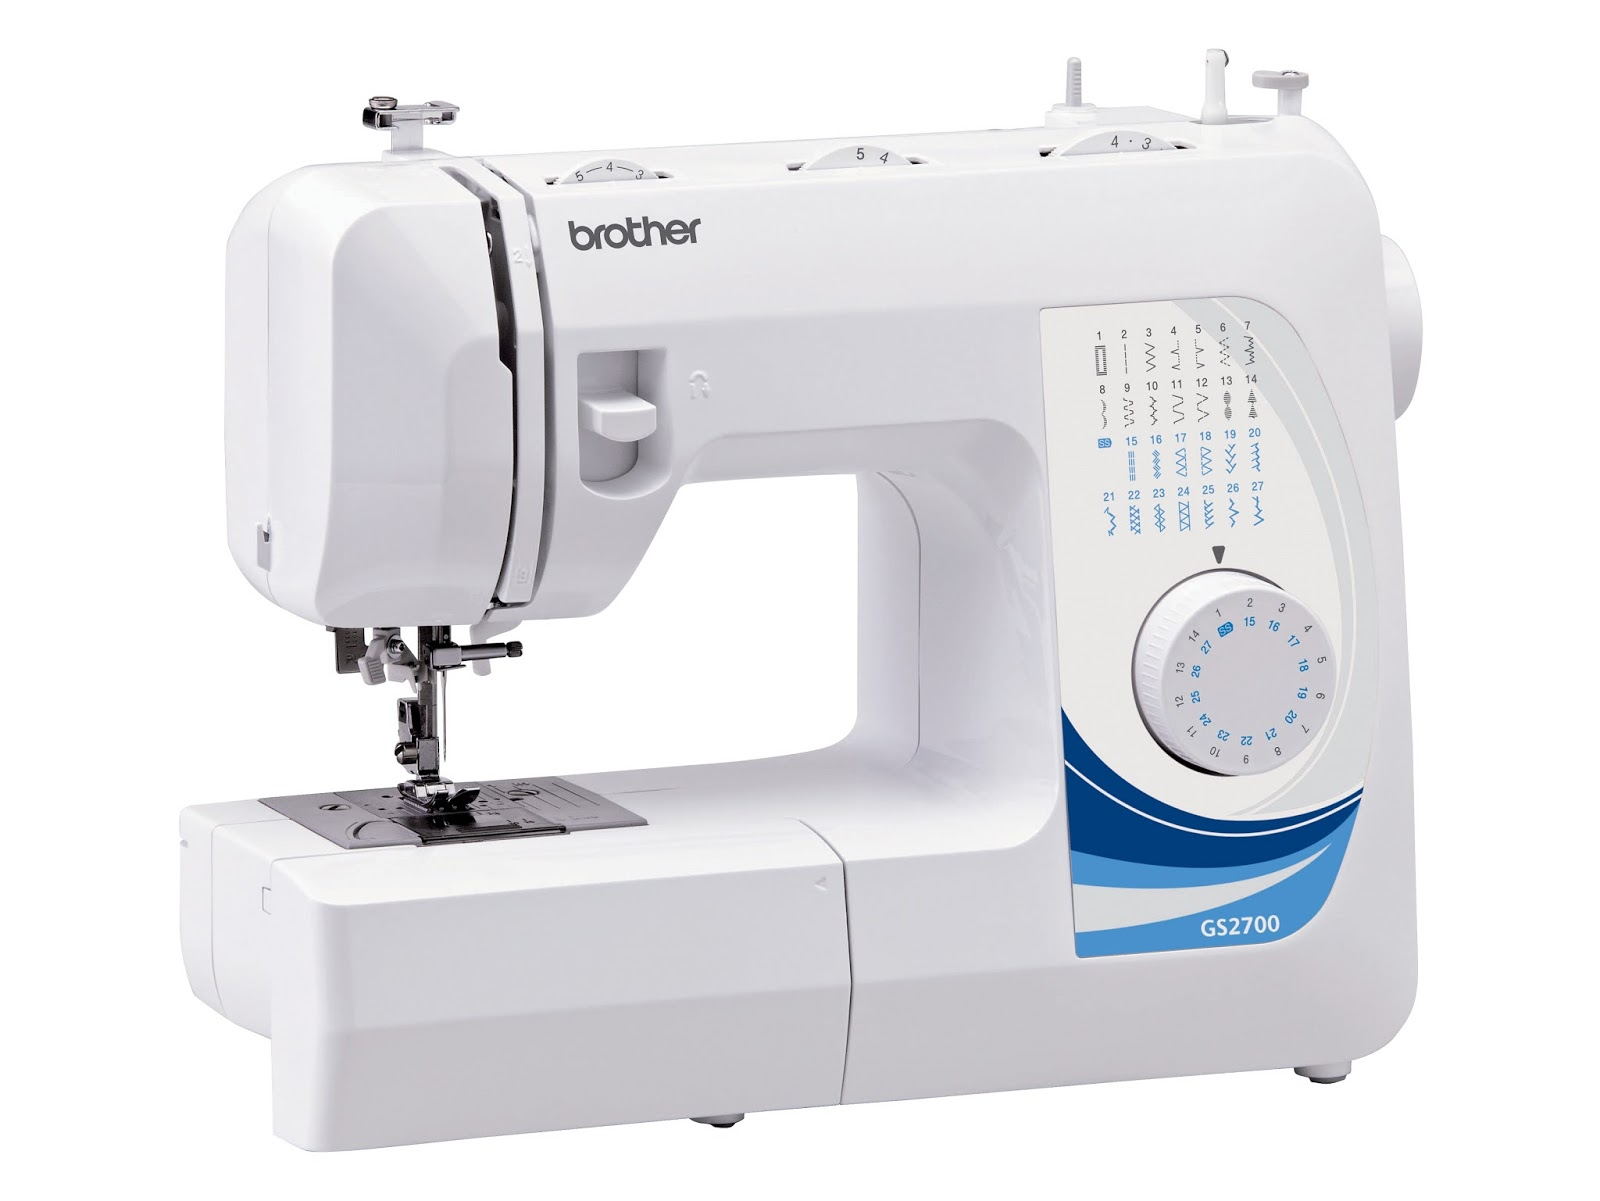 Brother GS-2700 Mechanical Sewing Machine